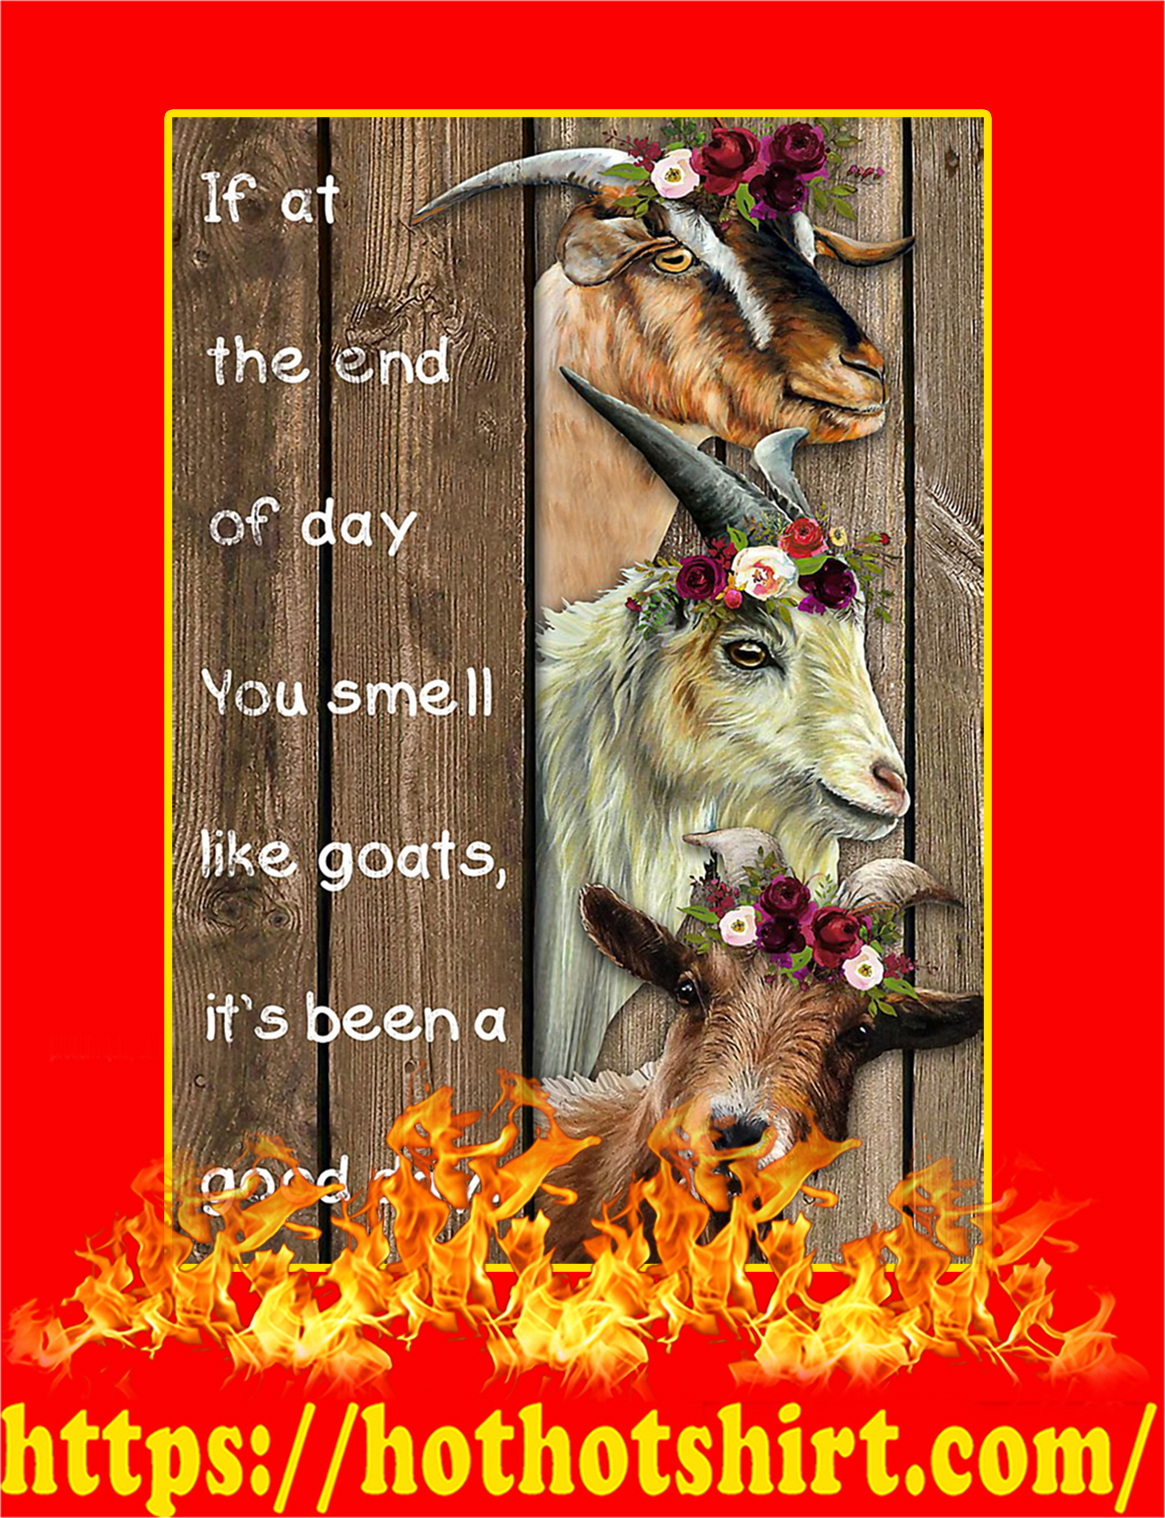 If At The End Of Day You Smell Like Goats Poster - A3